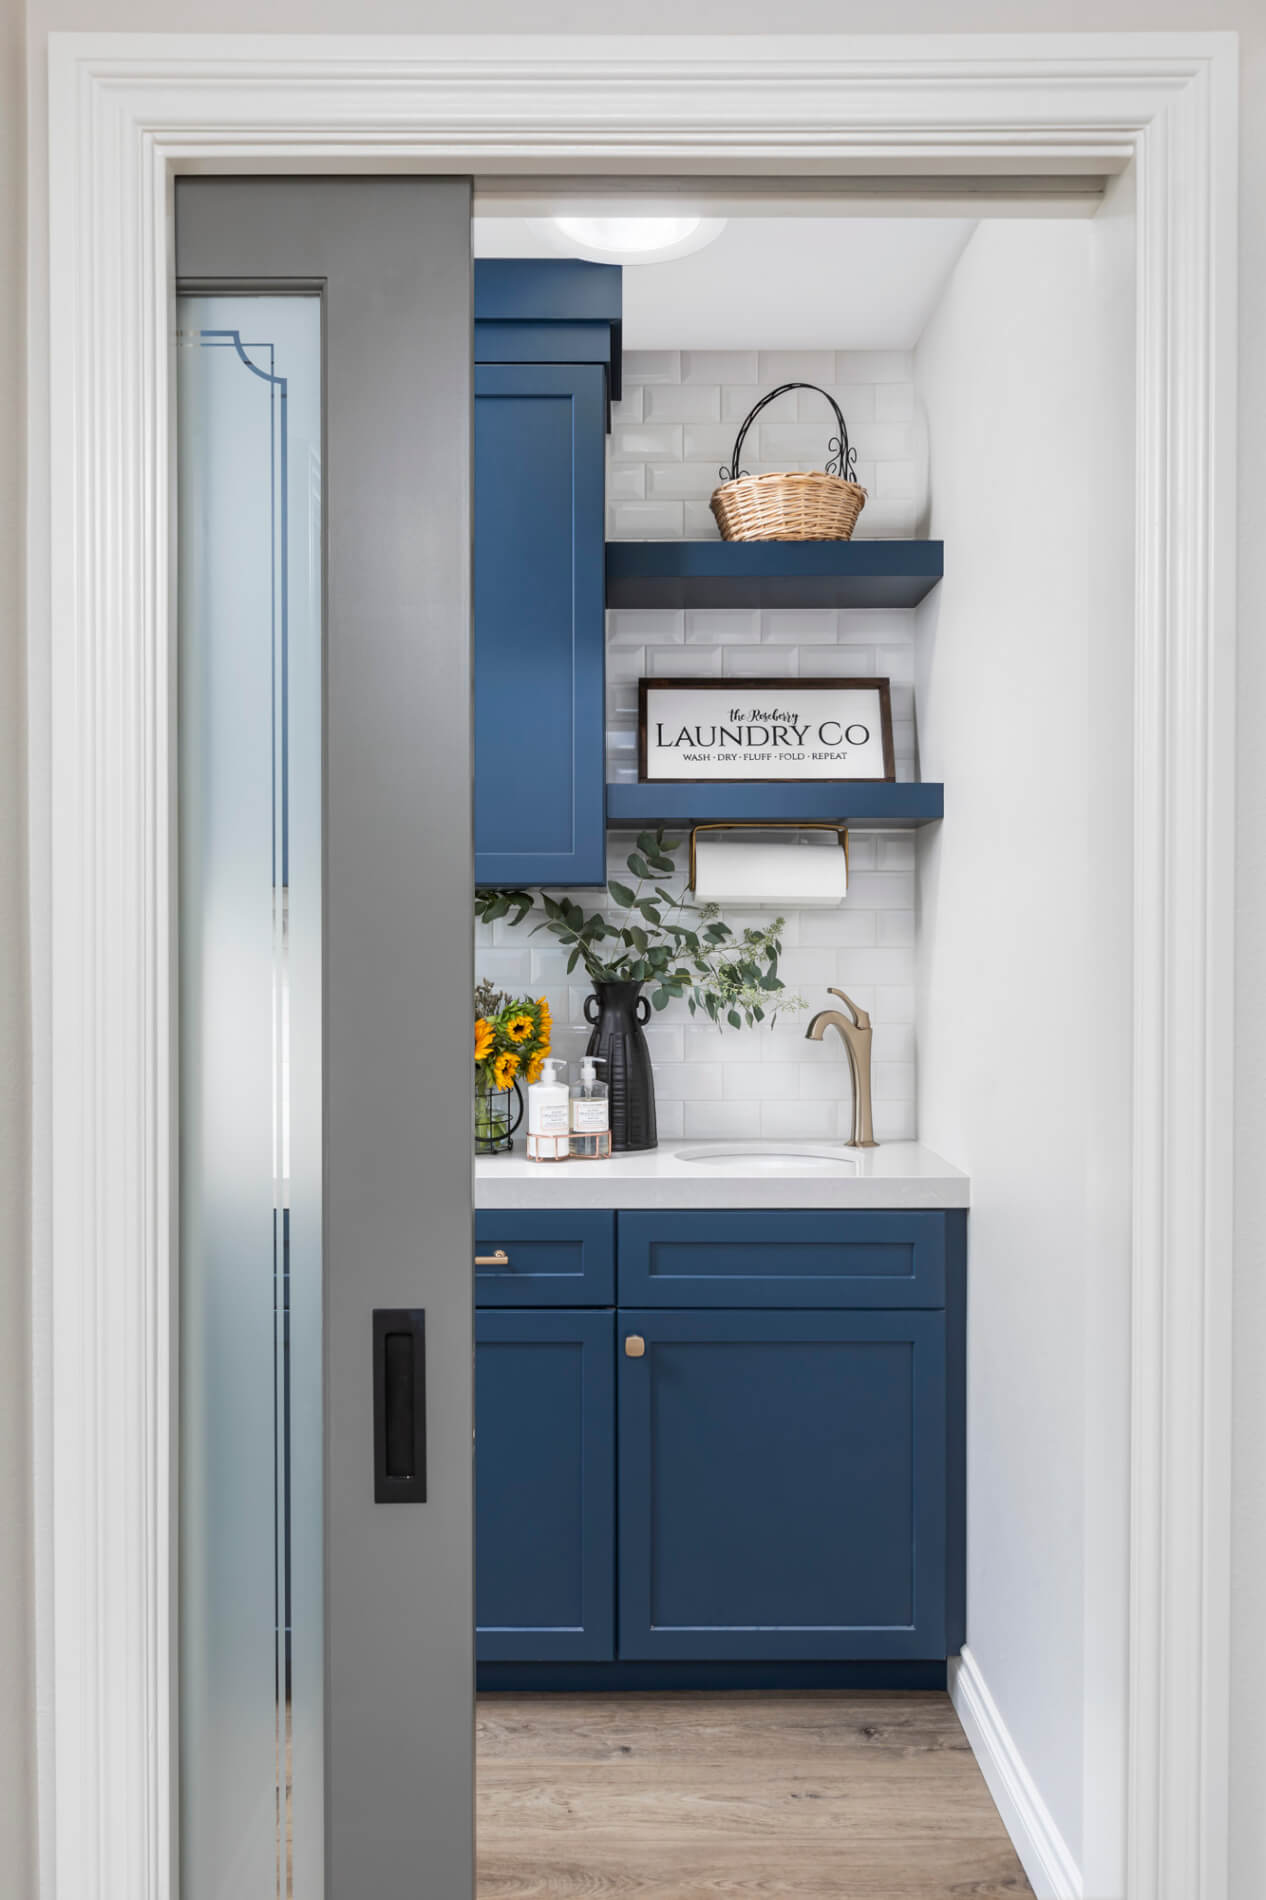 Tustin laundry room with pocket door to maximize space